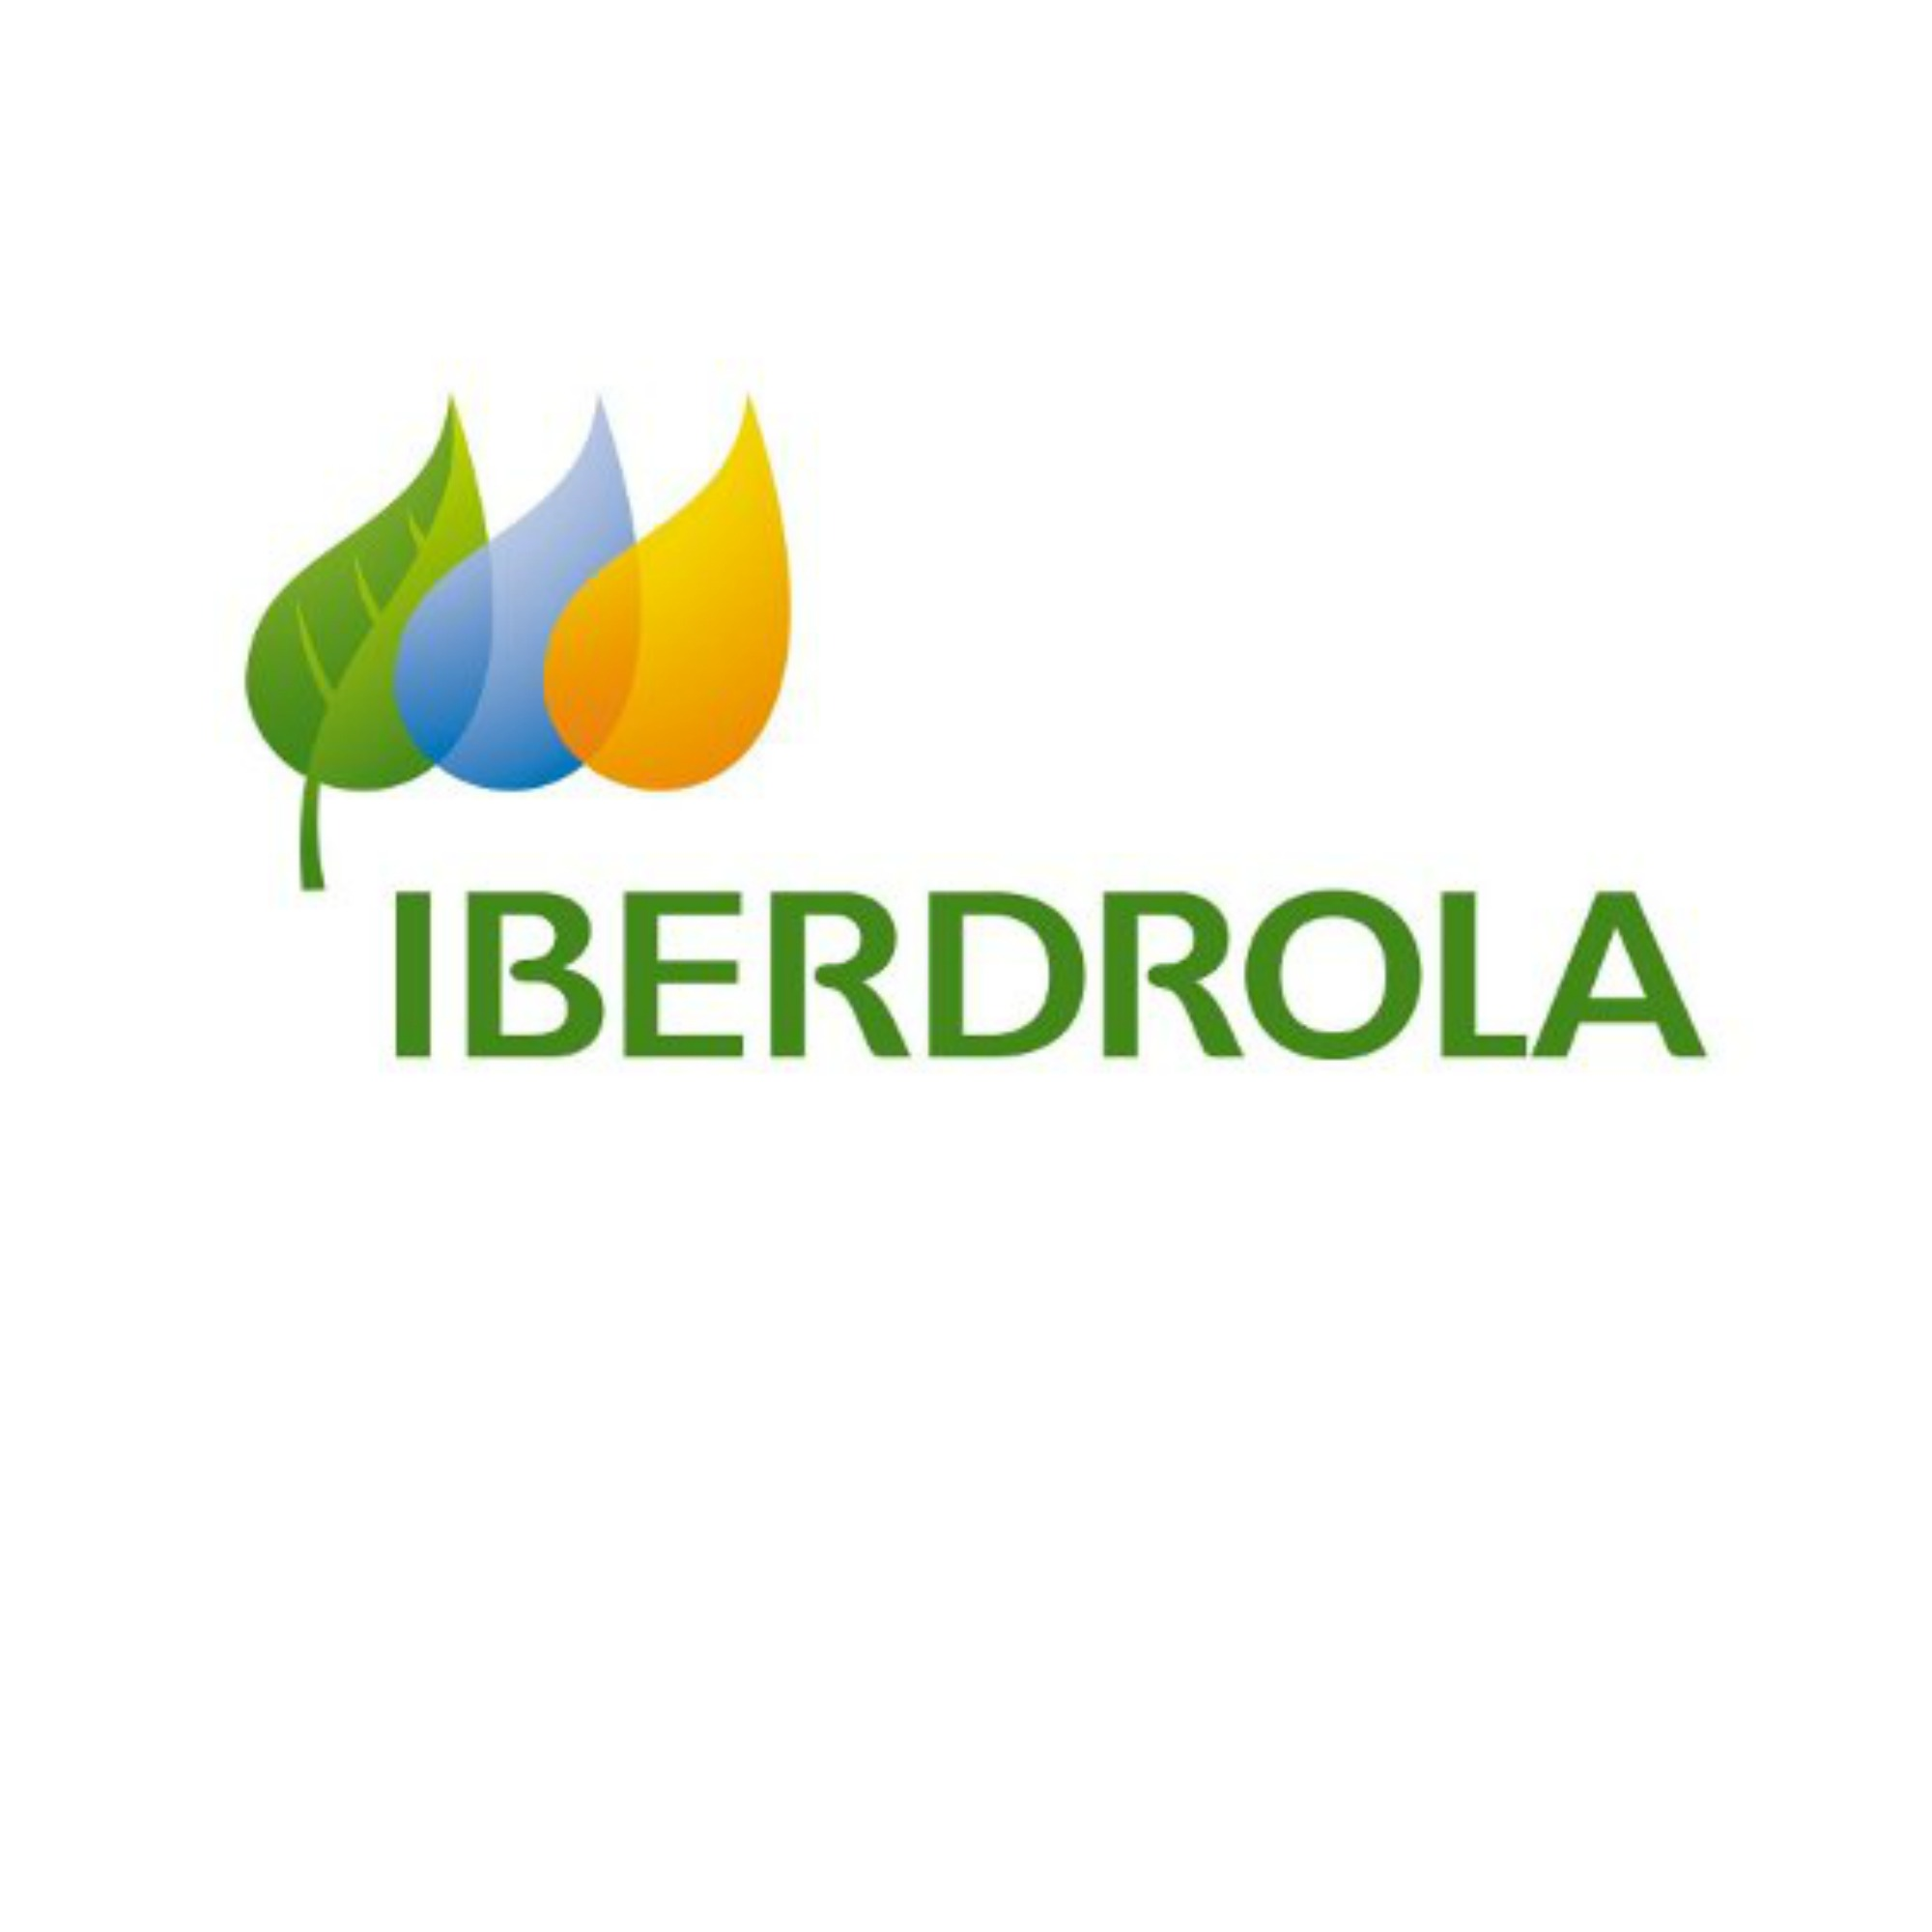 Oficina iberdrola alicante interesting affordable gallery for Oficina iberdrola